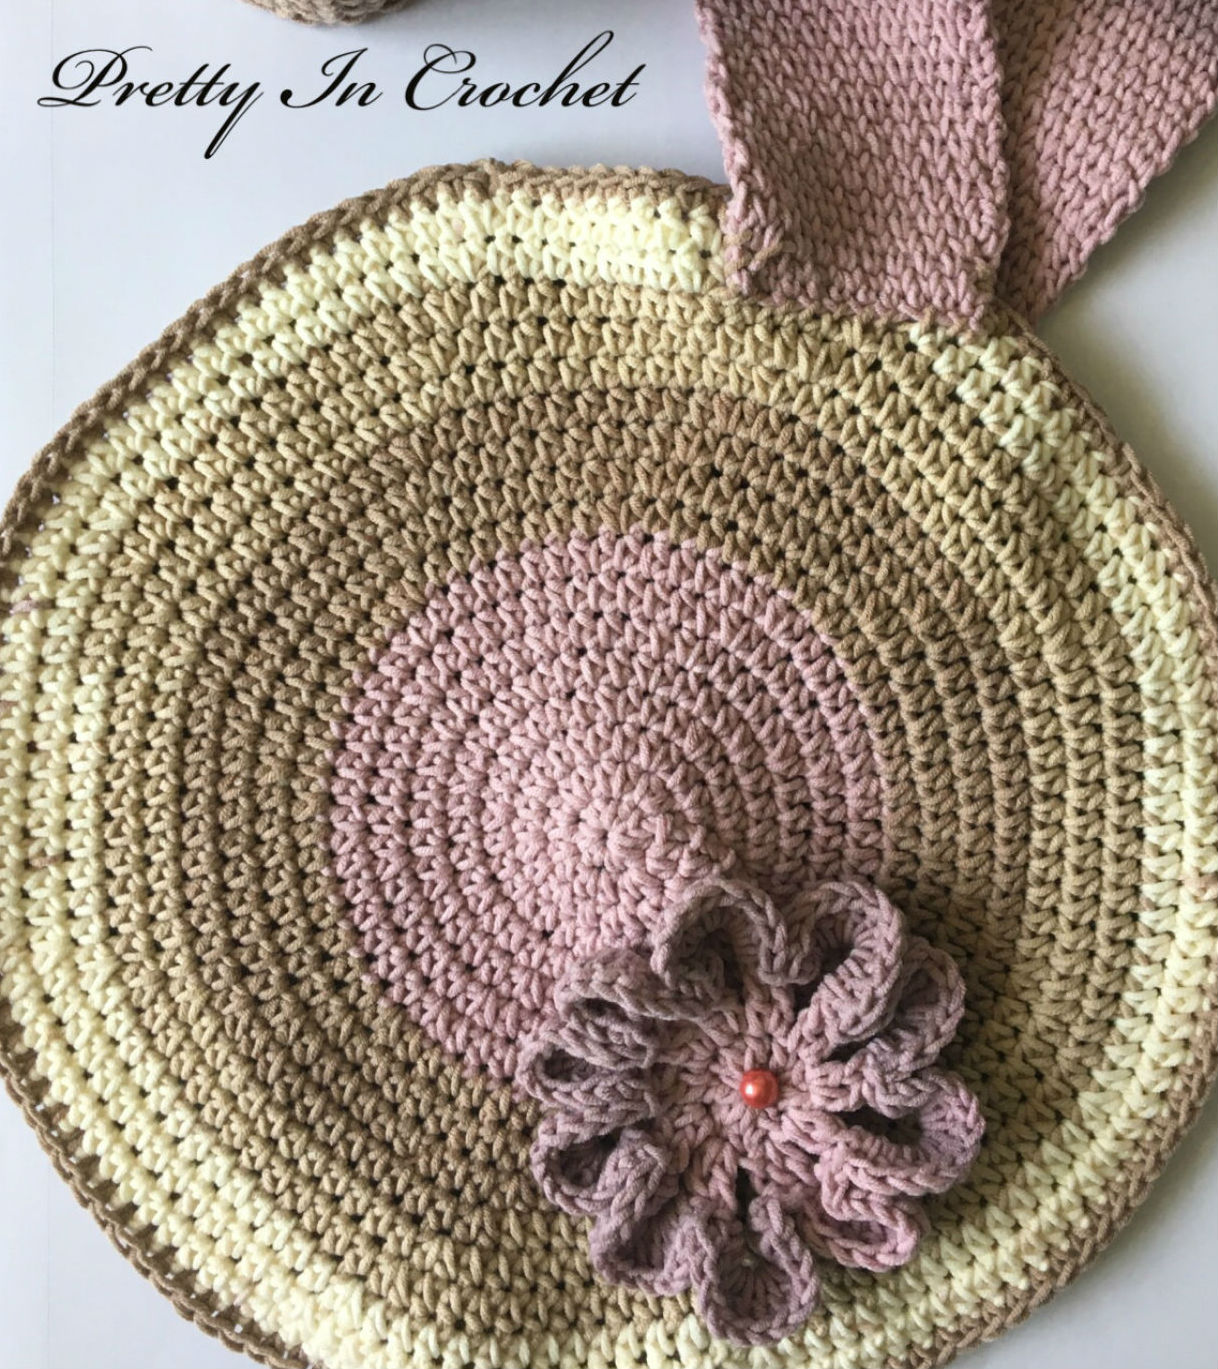 Boho Crochet Bag: Sunny Days Crochet Collection